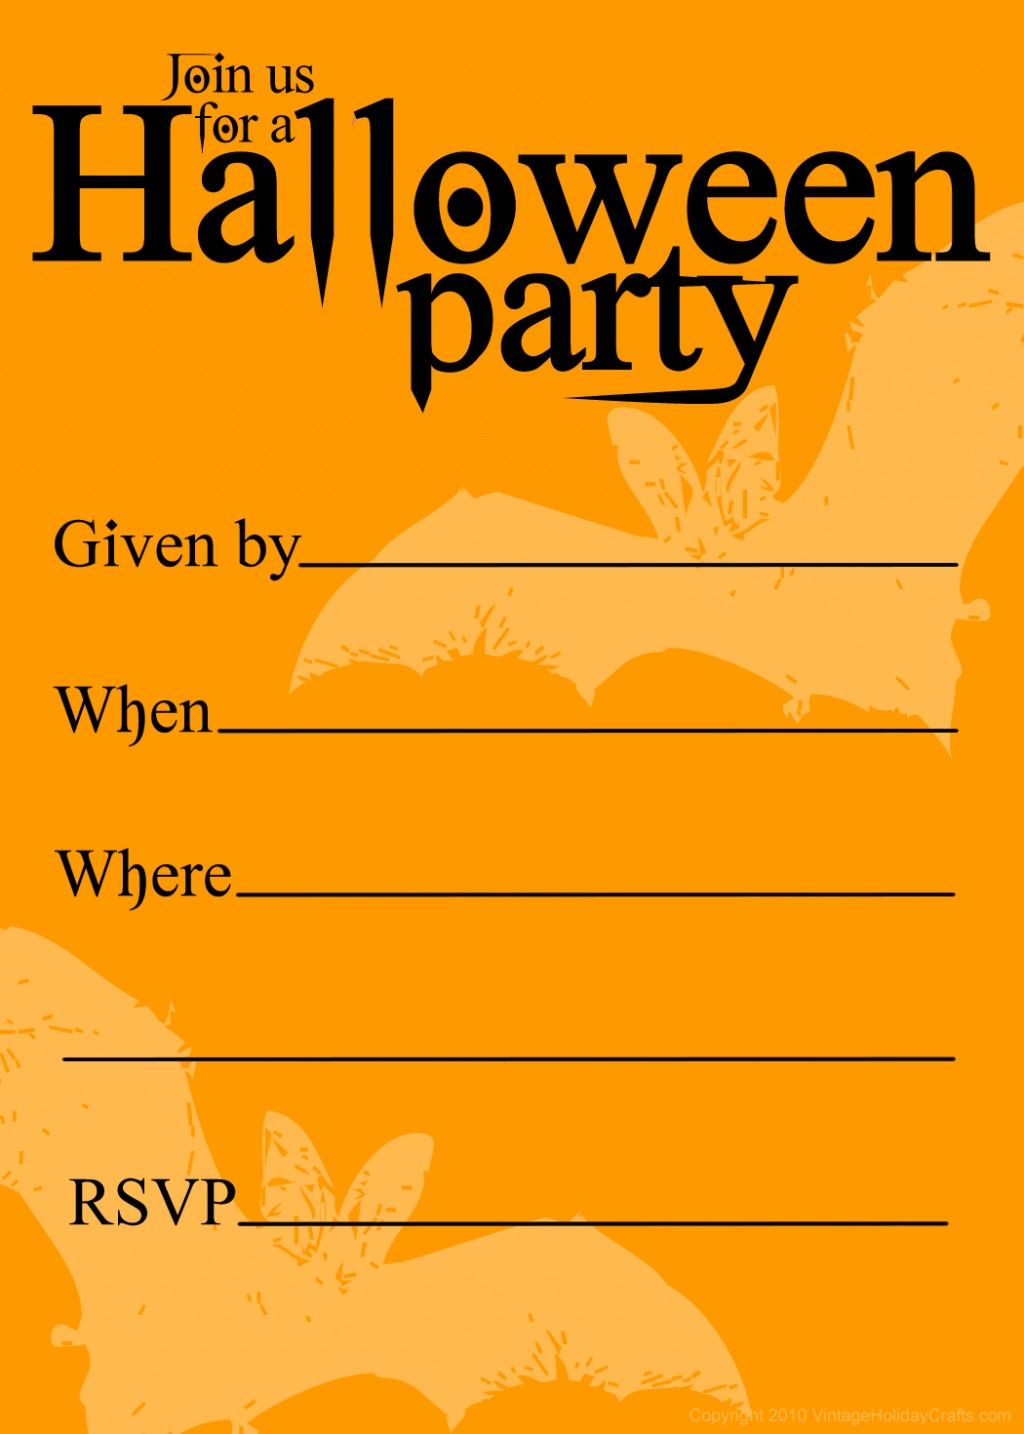 photograph relating to Printable Halloween Party Invitations referred to as No cost Printable Halloween Birthday Invites Templates